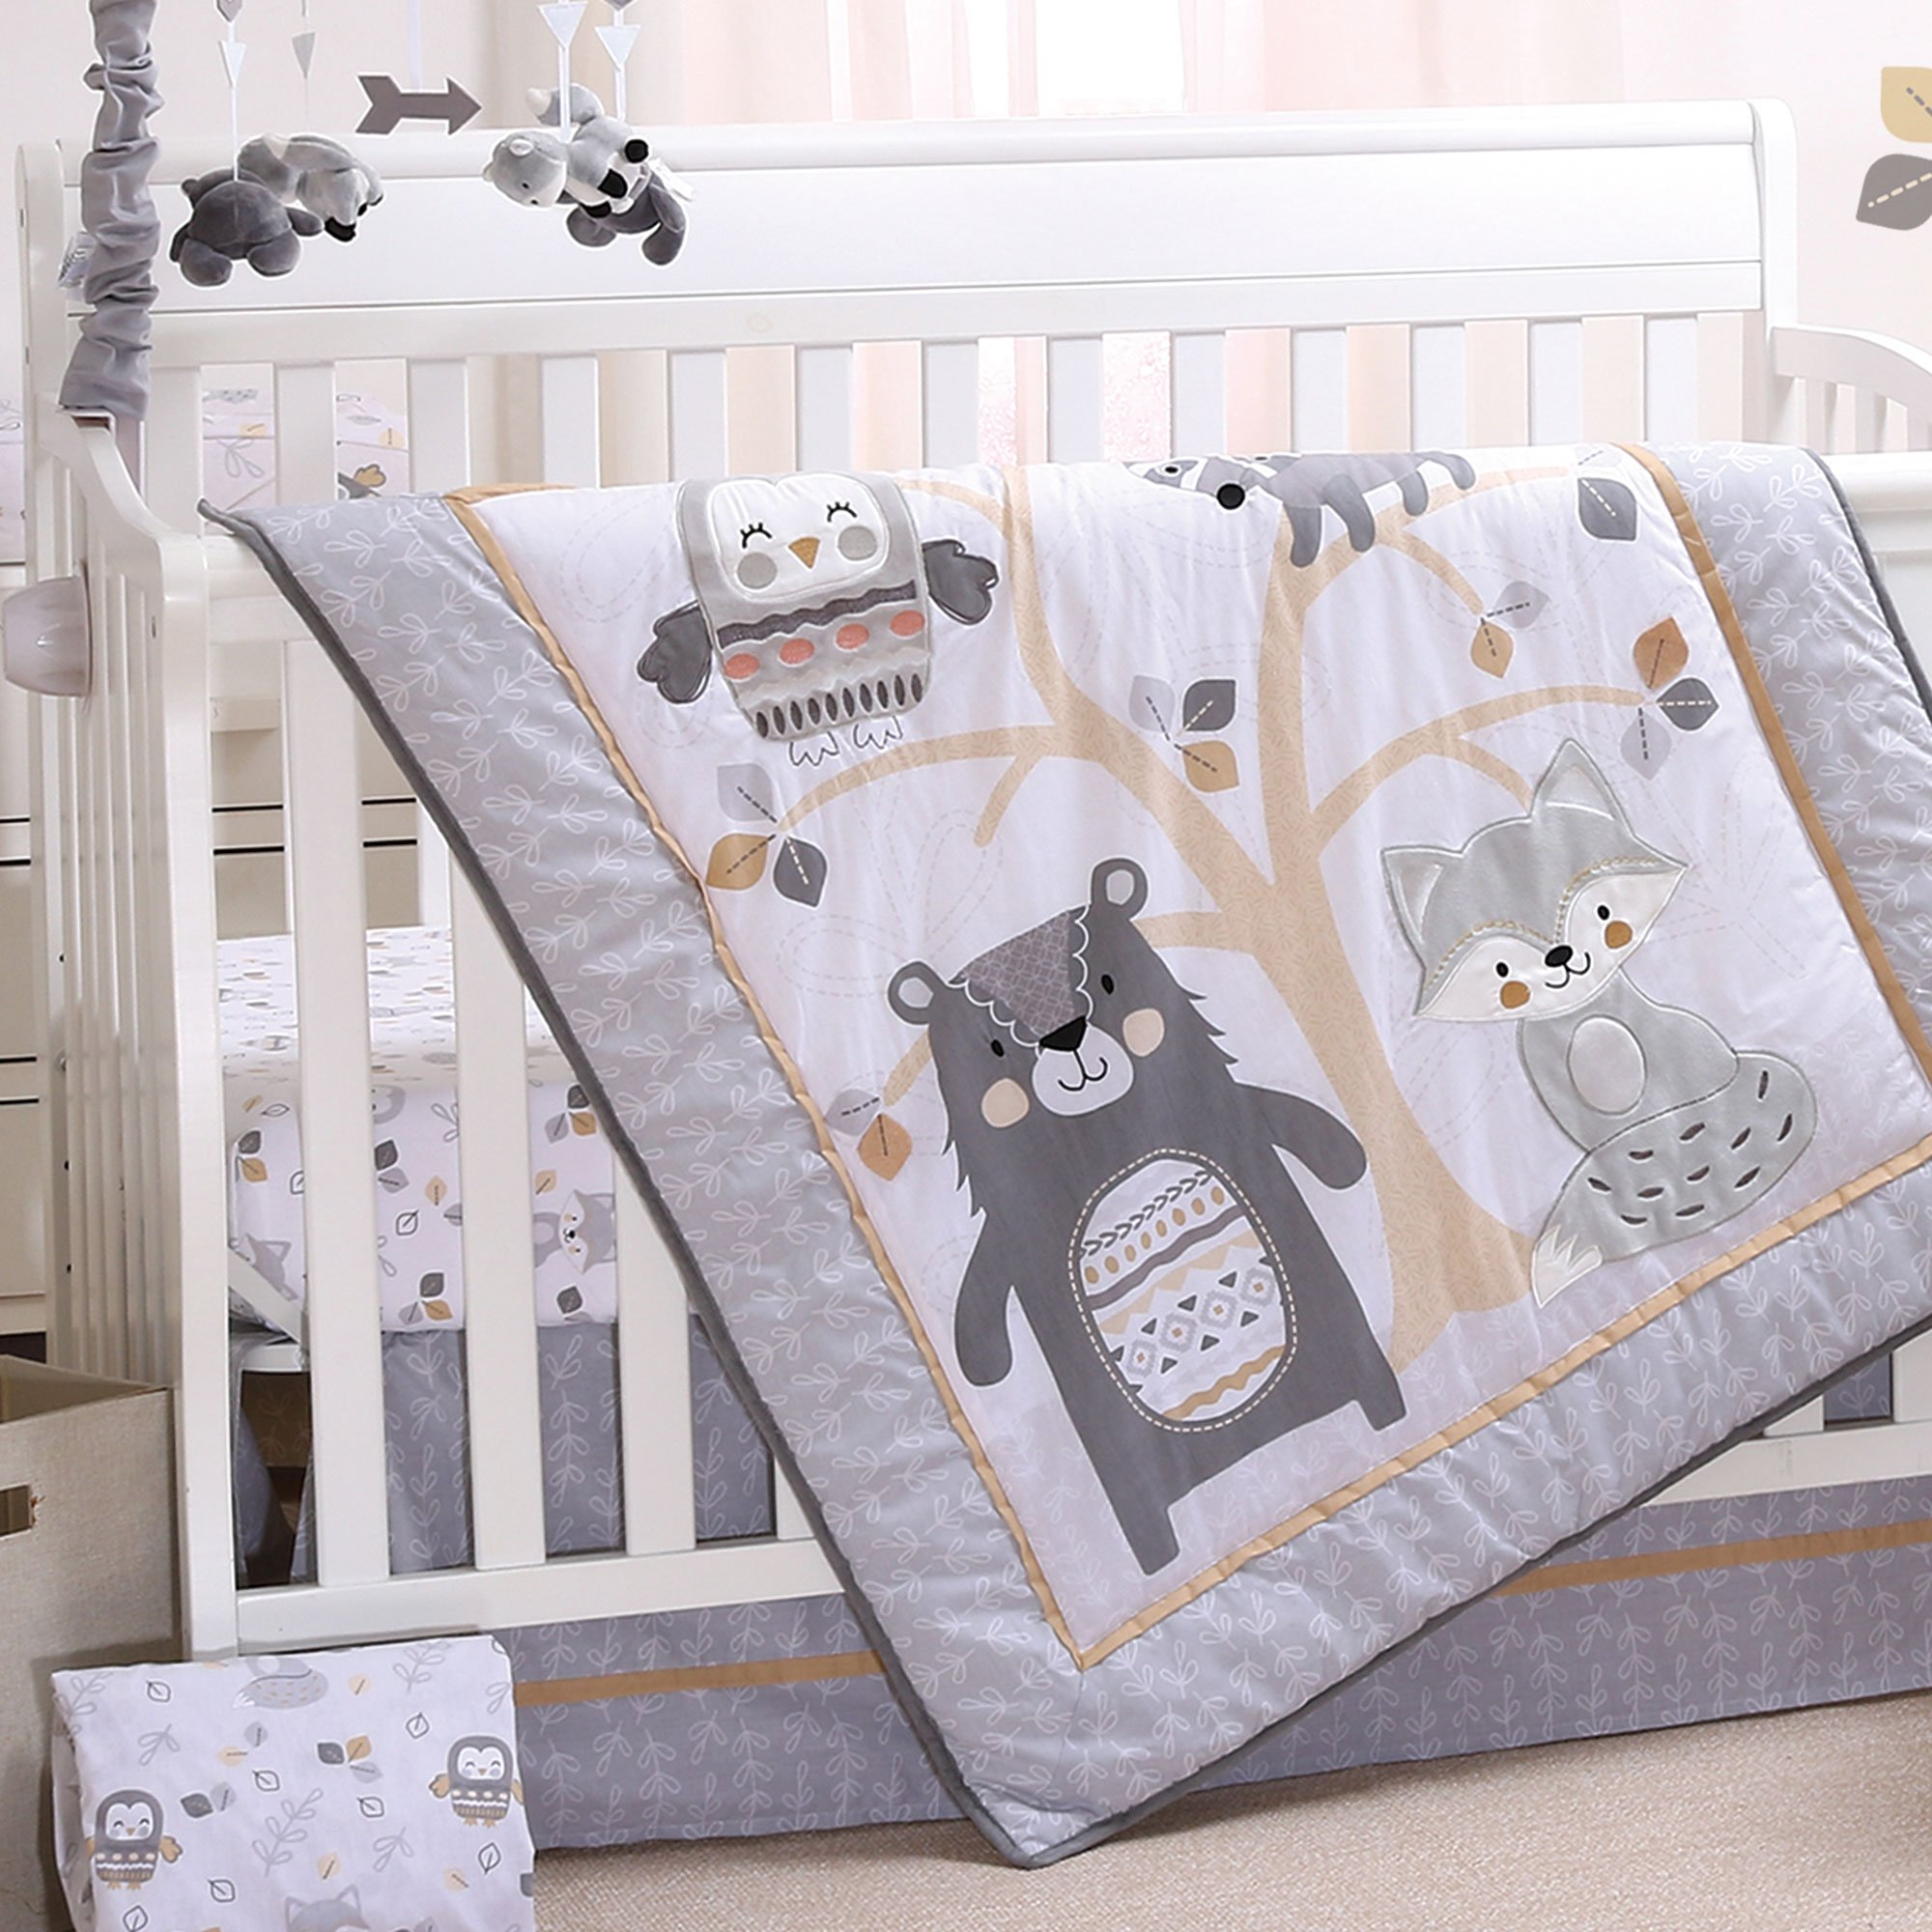 Woodland Friends 3 Piece Forest Animal Theme Baby Crib Bedding Set - Grey, Tan by Little Haven